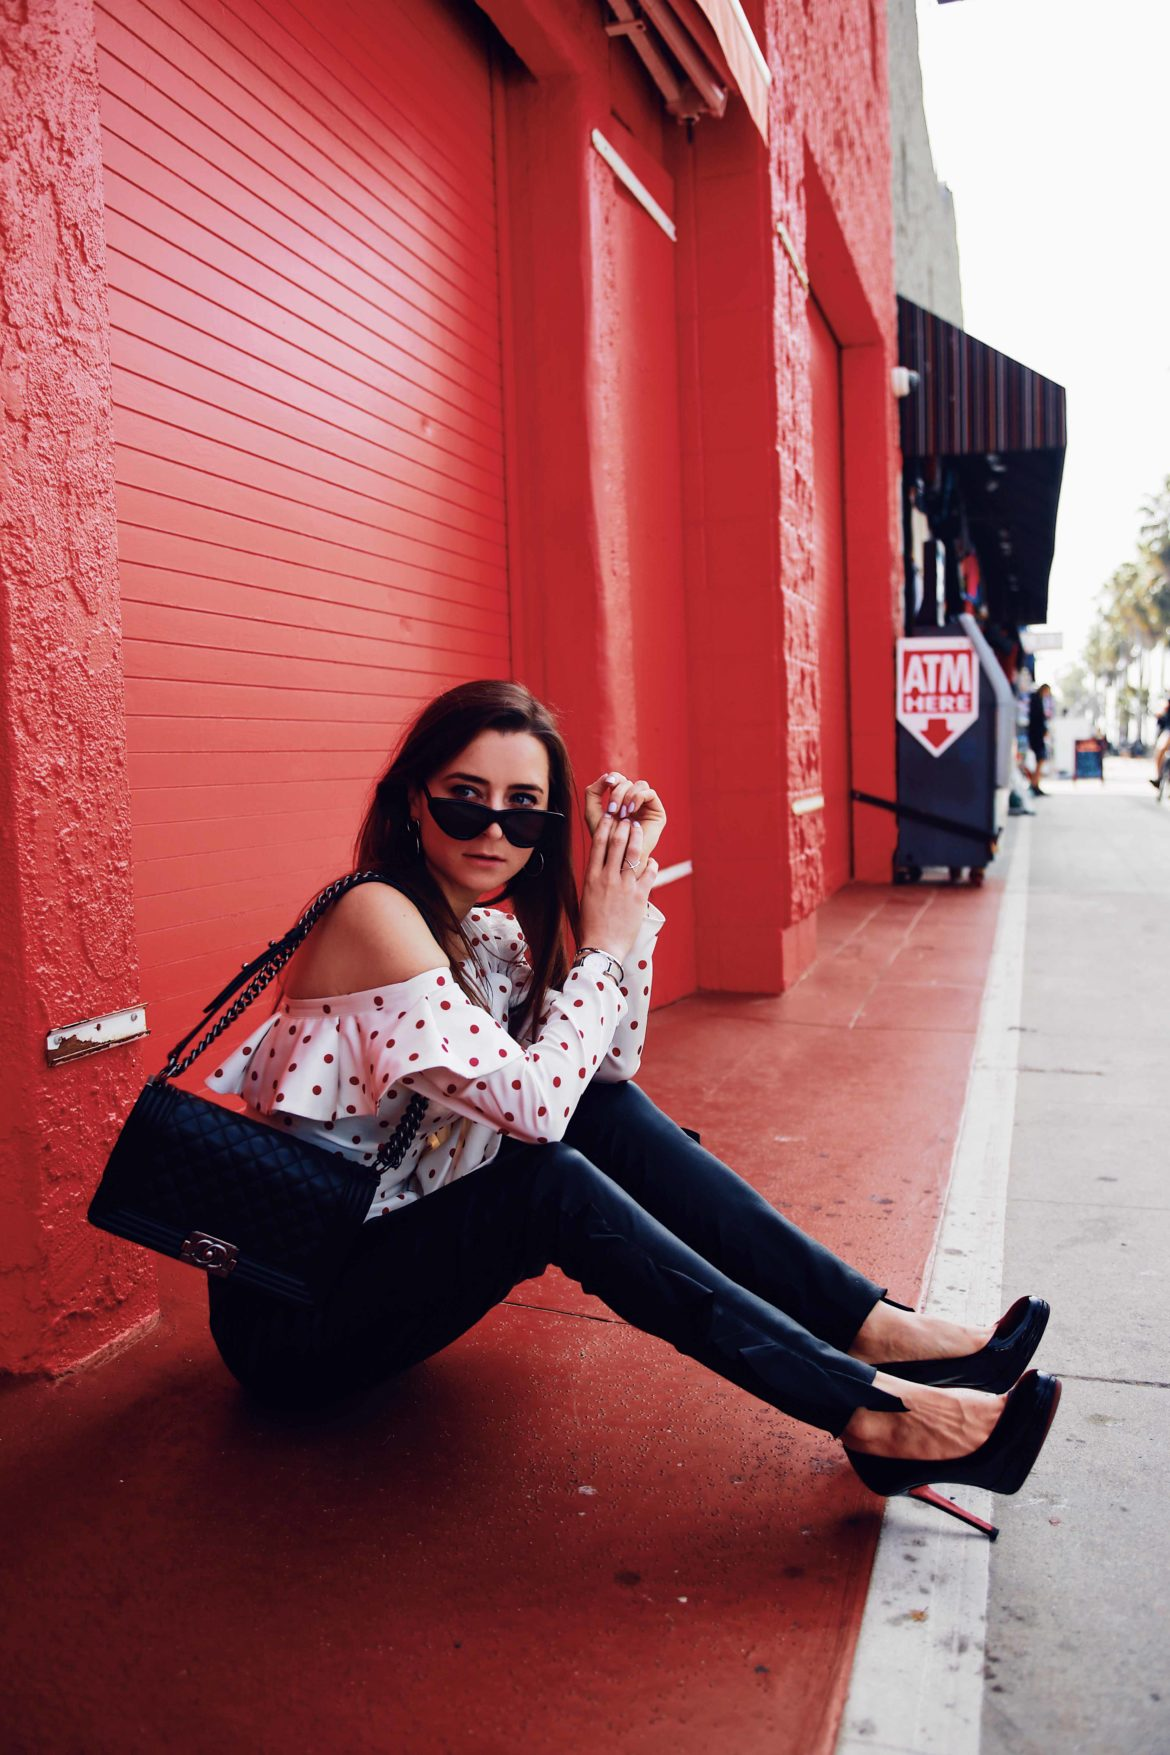 Best Style quotes to live by - Ruffled skinny leather pants by Iro and structured polka dots blouse by Self Portrait via If Chic - More about this sophisticated and edgy look on Houseofcomil.com. Pictures by Julia Comil French Fashion Blogger in Los Angeles